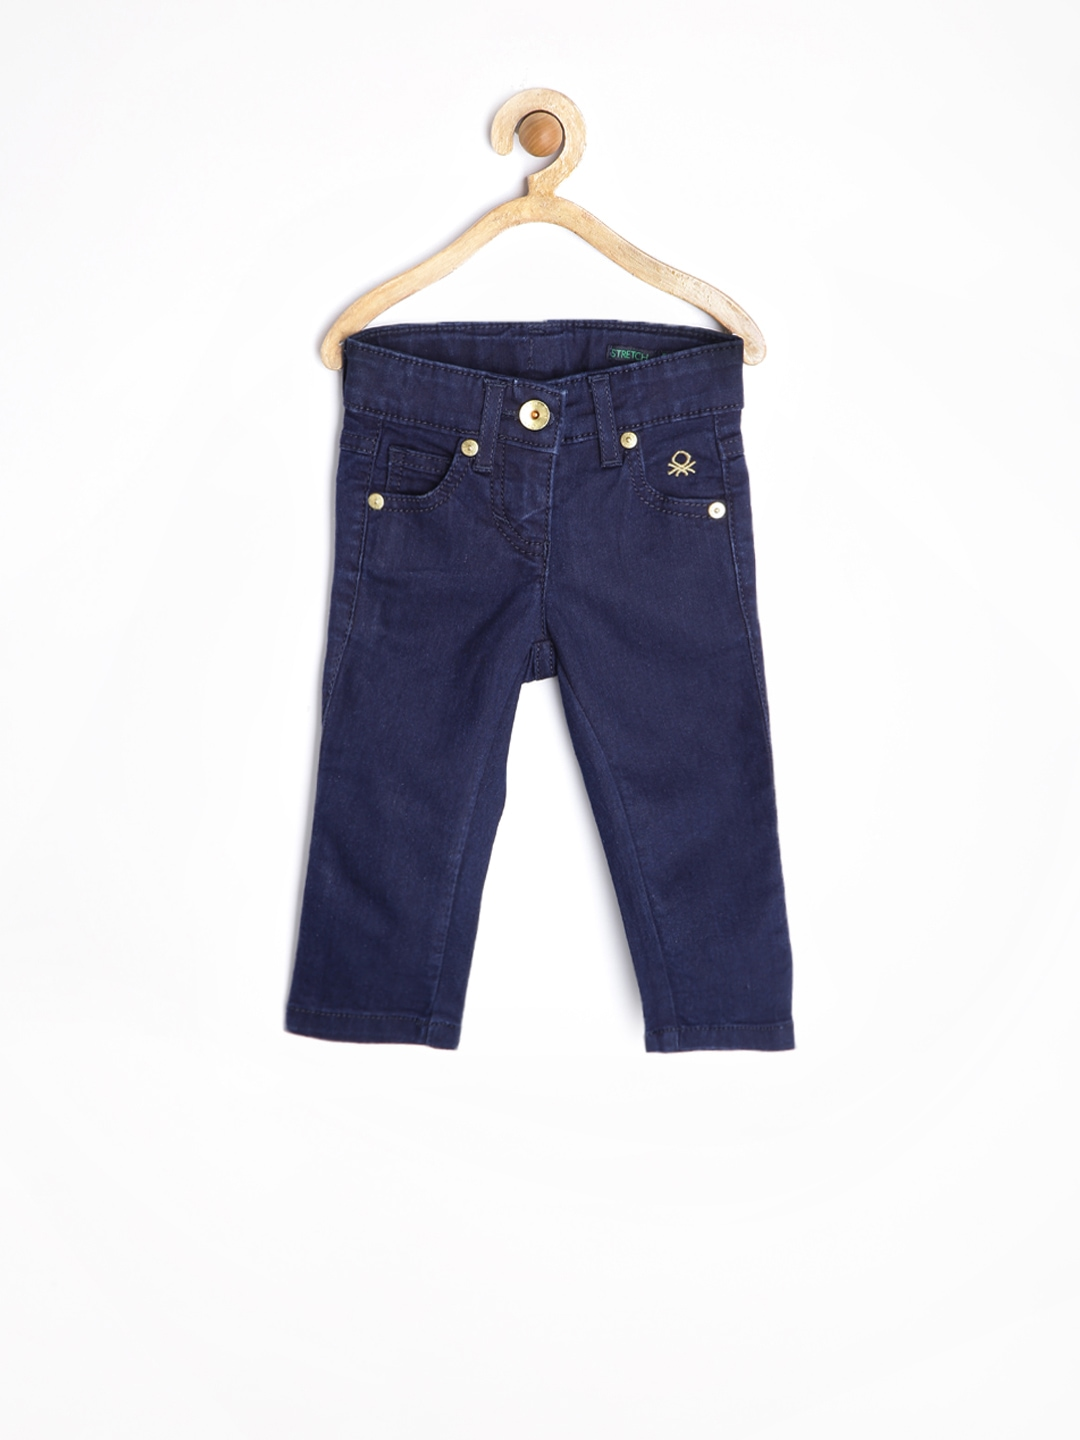 Dark Blue Jeans 531902  Buy Myntra United Colors of Benetton Jeans